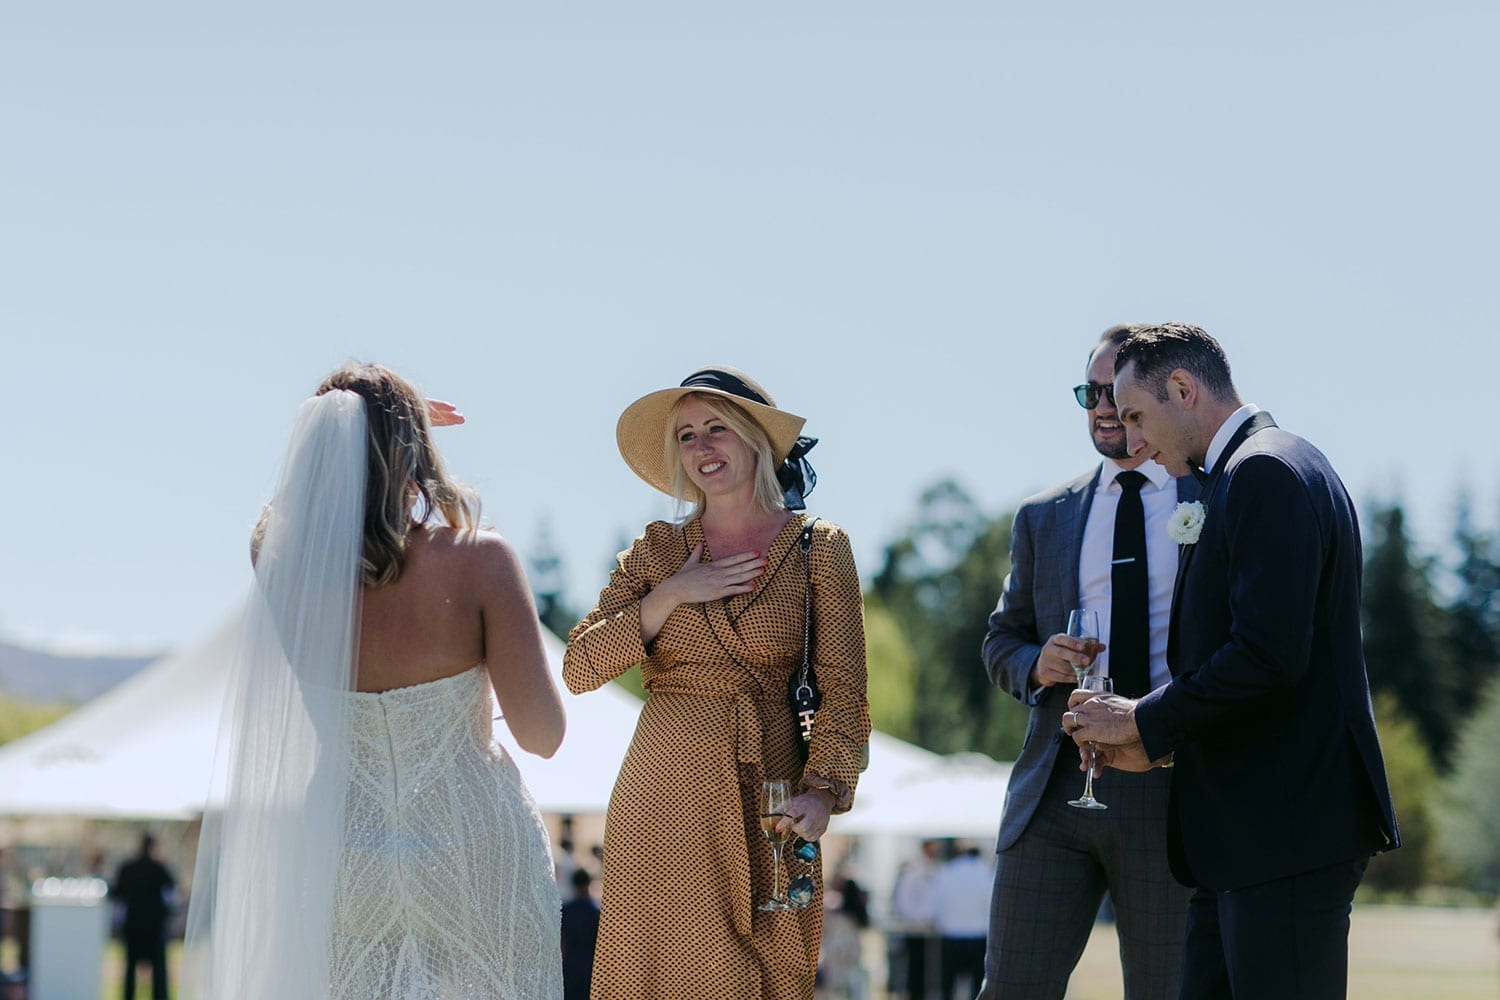 Vinka Design Features Real Weddings - bride in custom made gown, a combination of our Indi wedding dress with added beading appliqued and sewn by hand, over the top of a nude semi sheer base. With guests outdoors